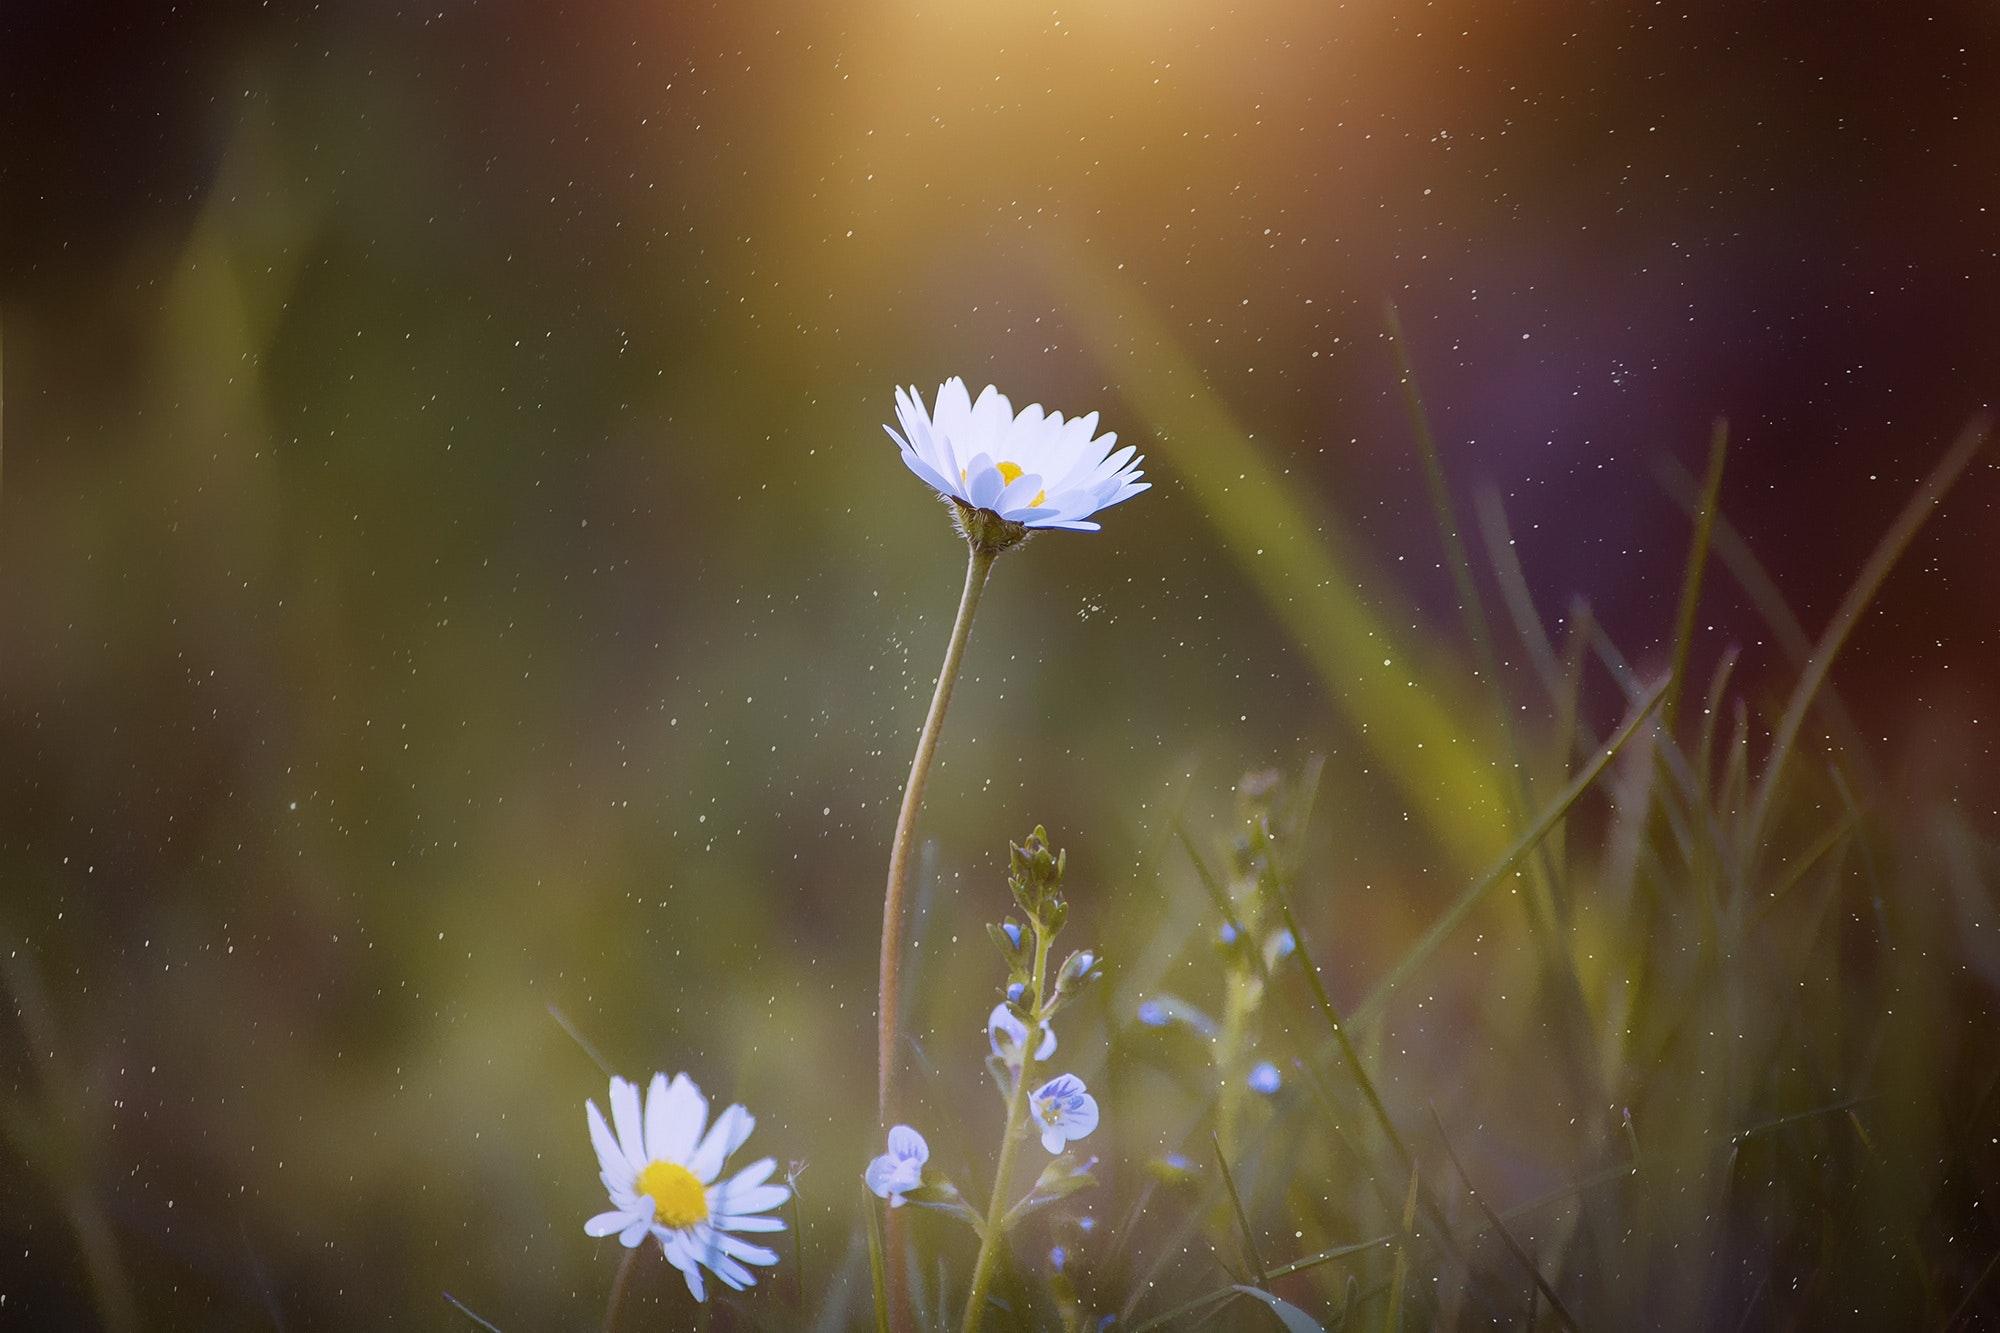 blooming-blur-close-up-daisy